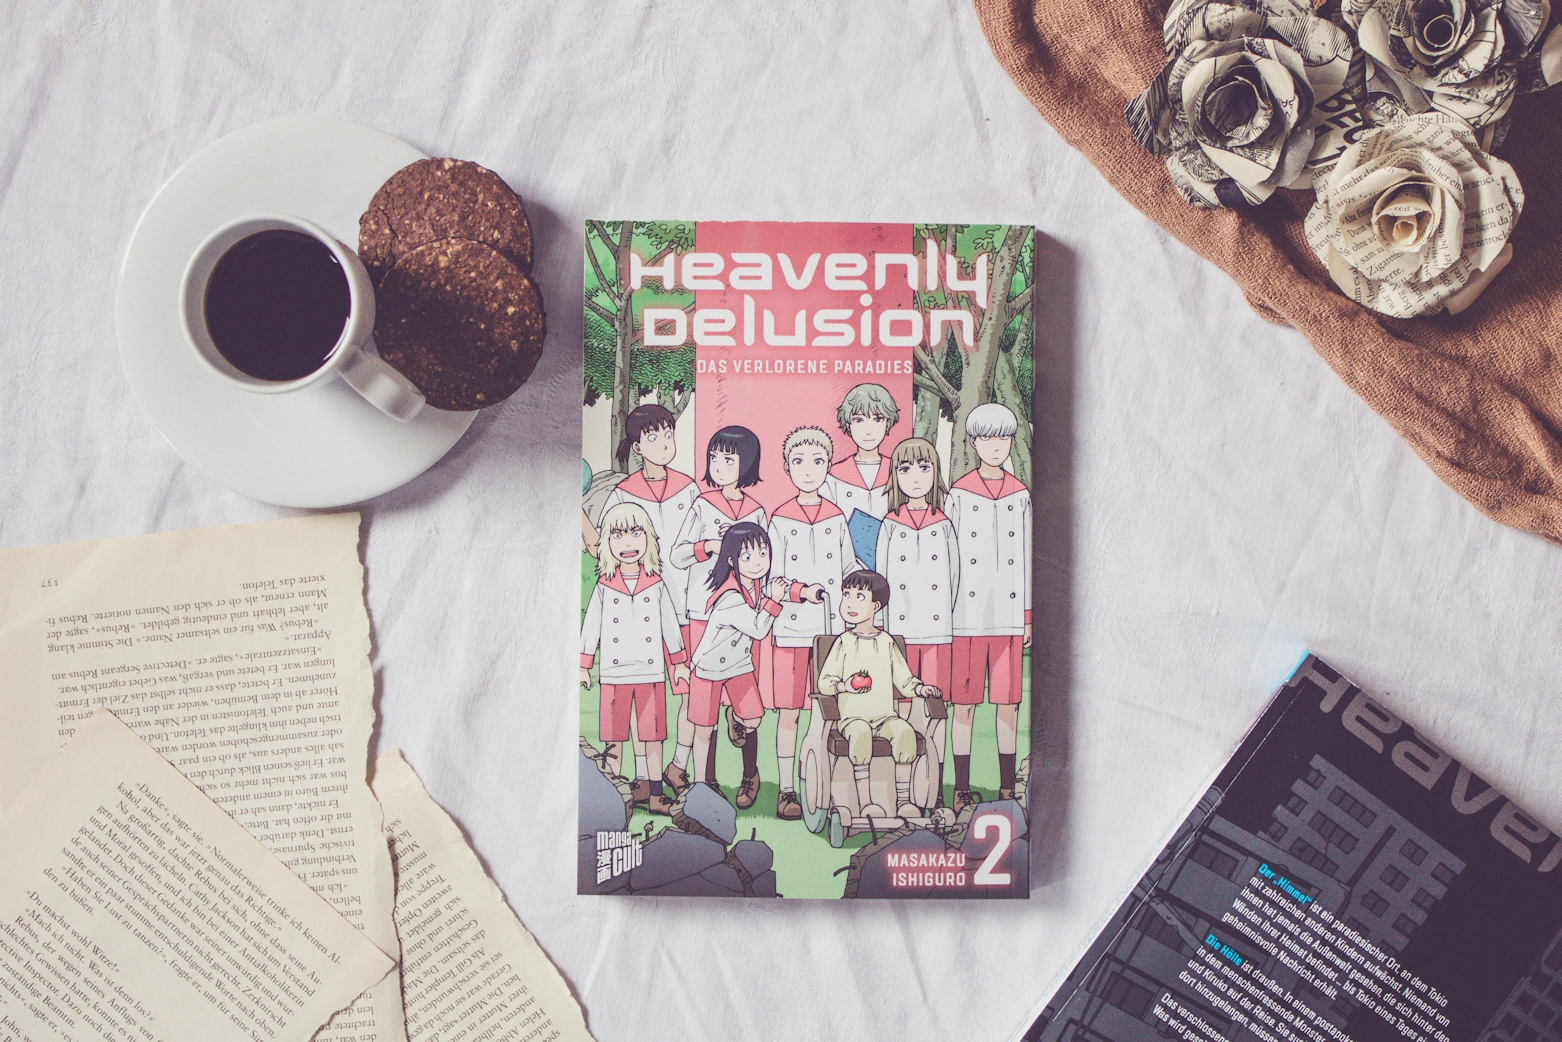 Heavenly Delusion Rezension